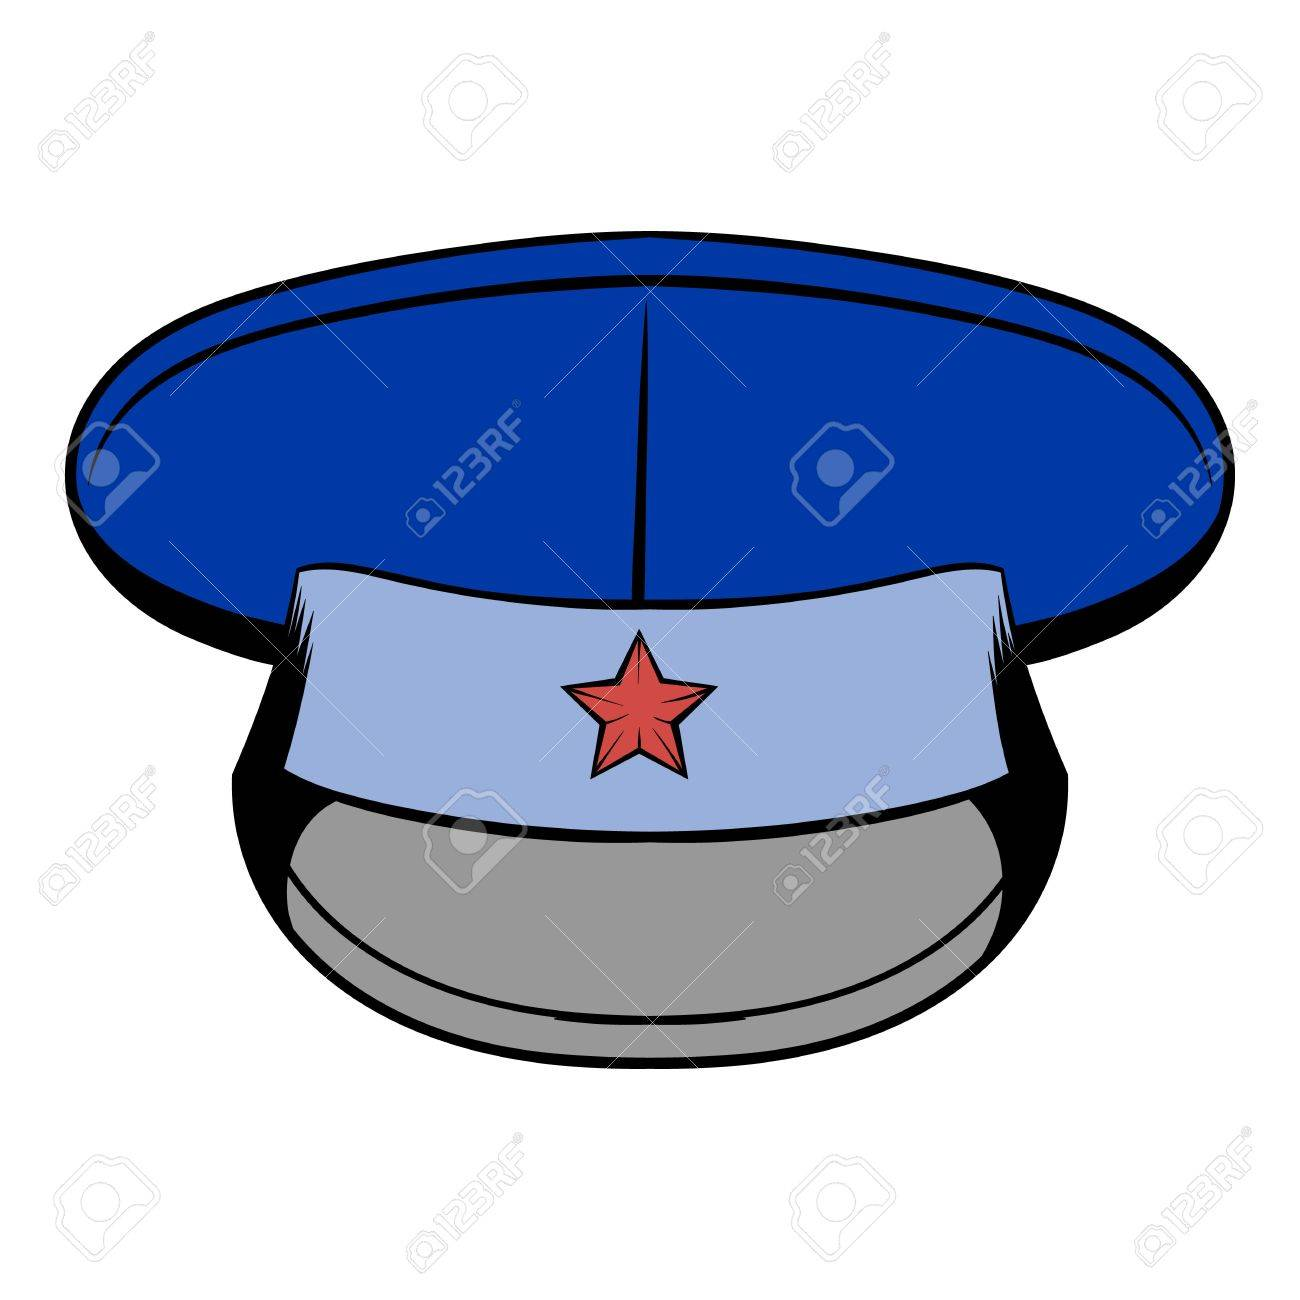 Blue Military Hat With Star Icon Cartoon Royalty Free Cliparts ... d7fb2e0541e